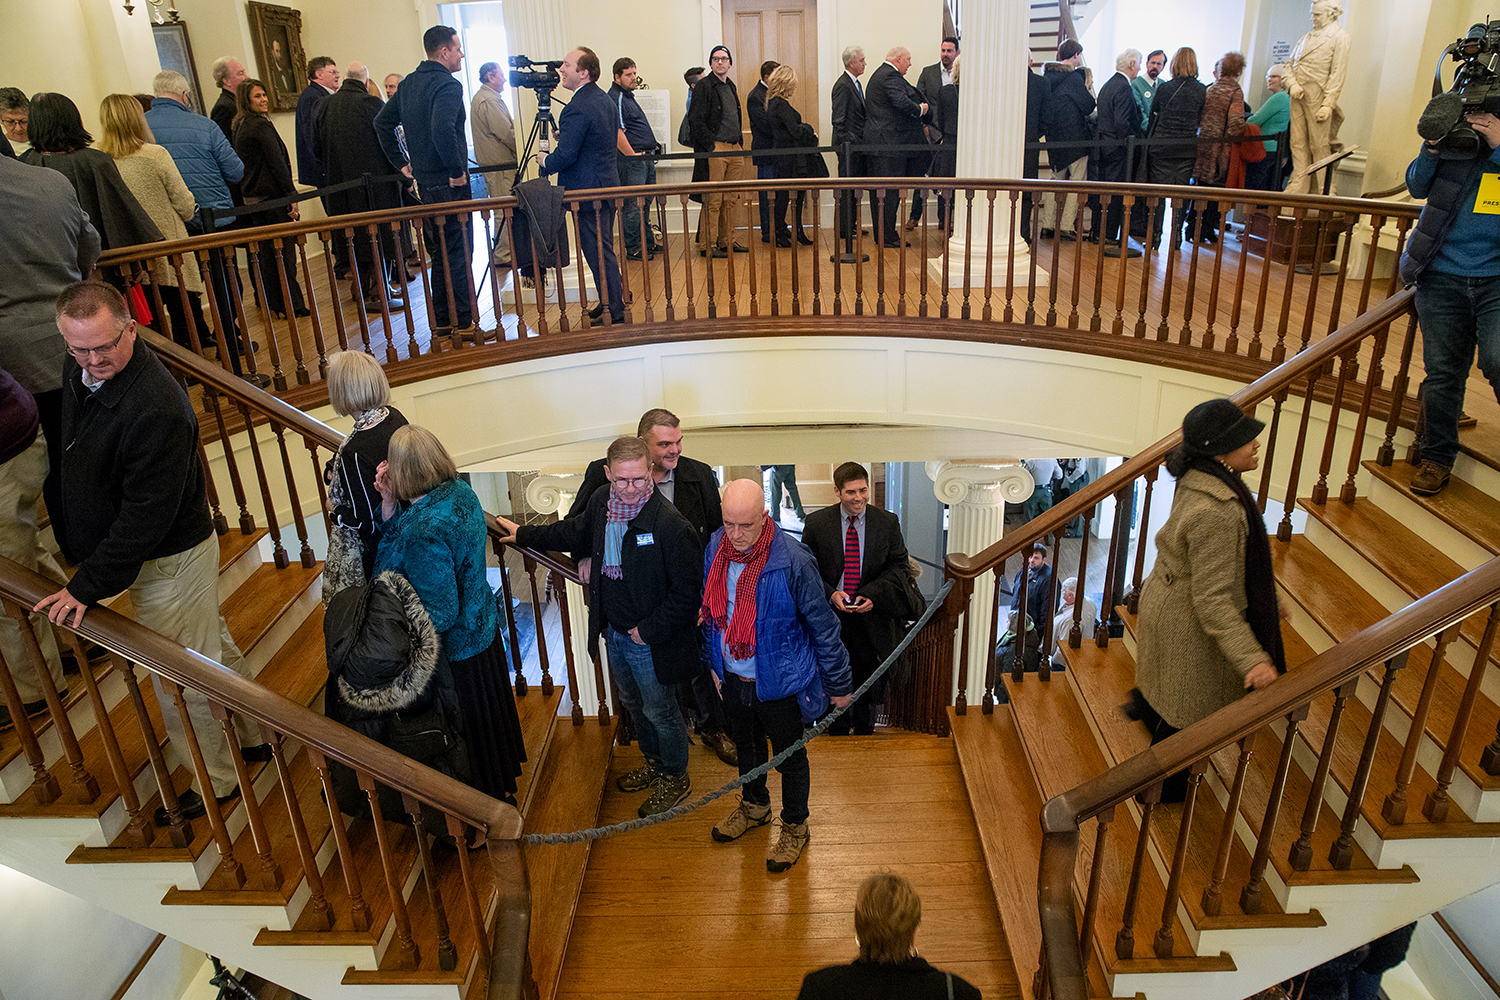 Guests queue up in the stairwell at the Old State Capitol to greet Governor-elect J.B. Pritzker during an open house Sunday, Jan. 13, 2019. [Ted Schurter/The State Journal-Register]